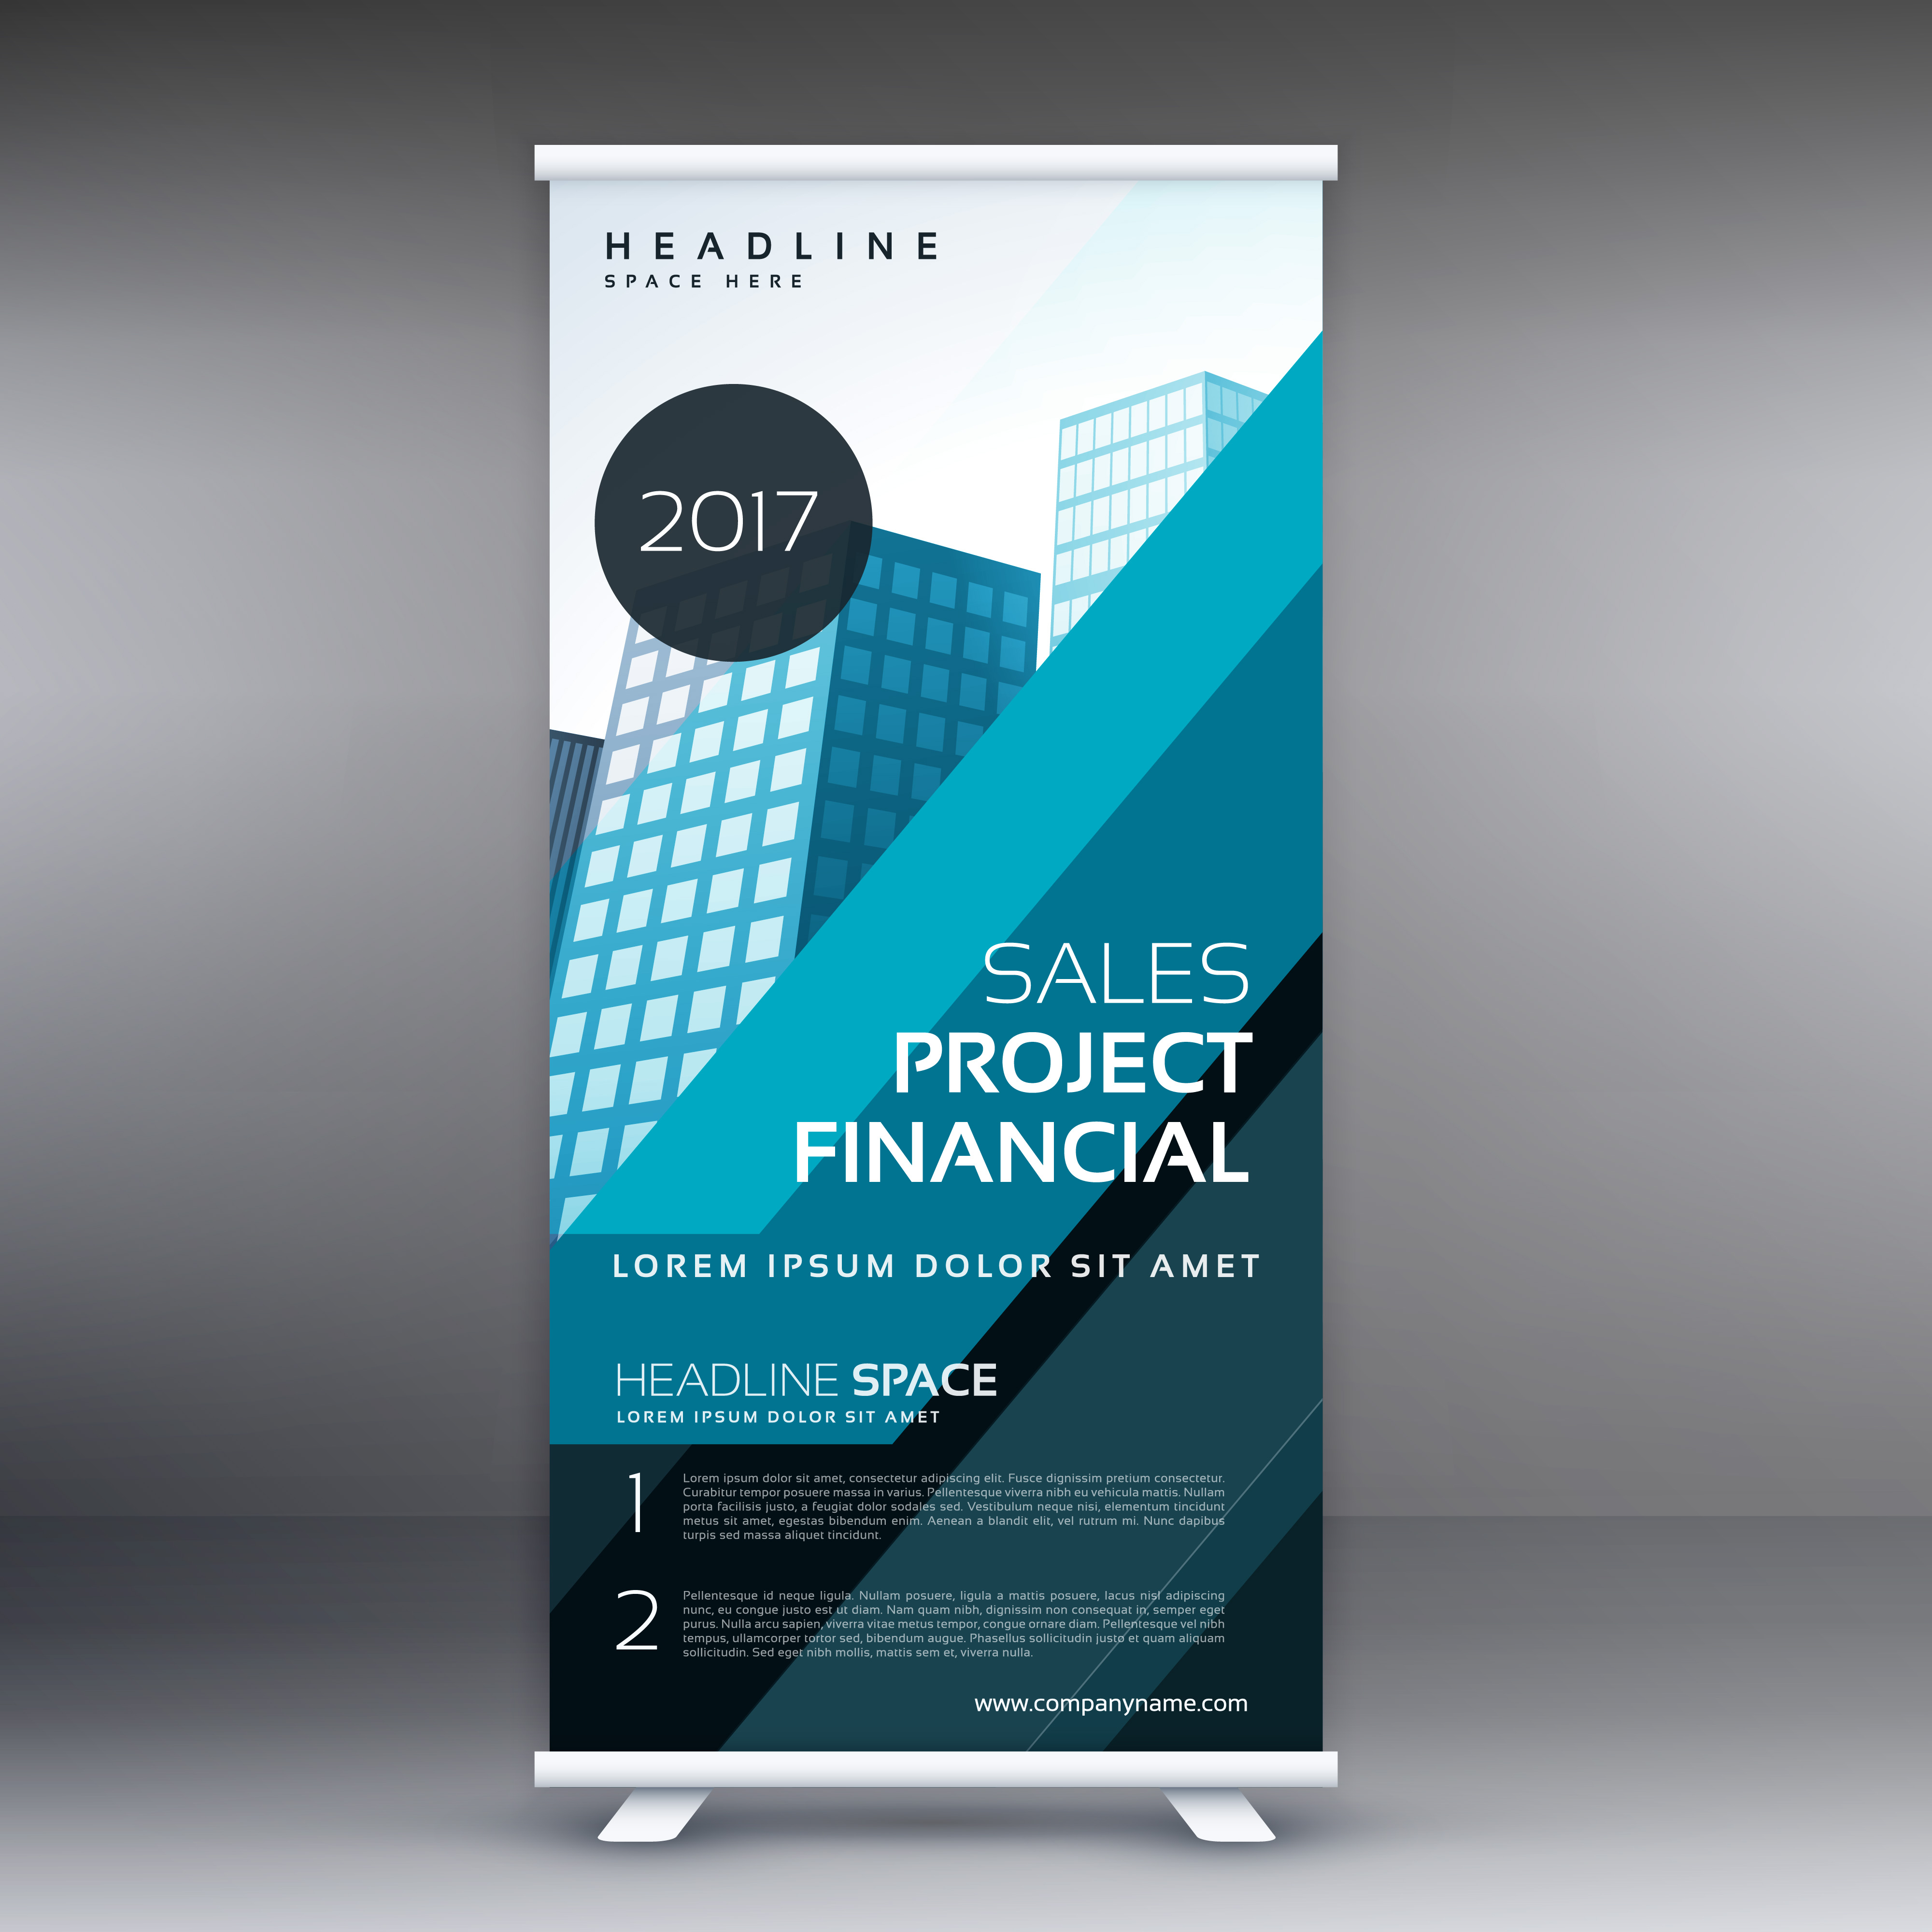 abstract blue standee roll up banner design concept for